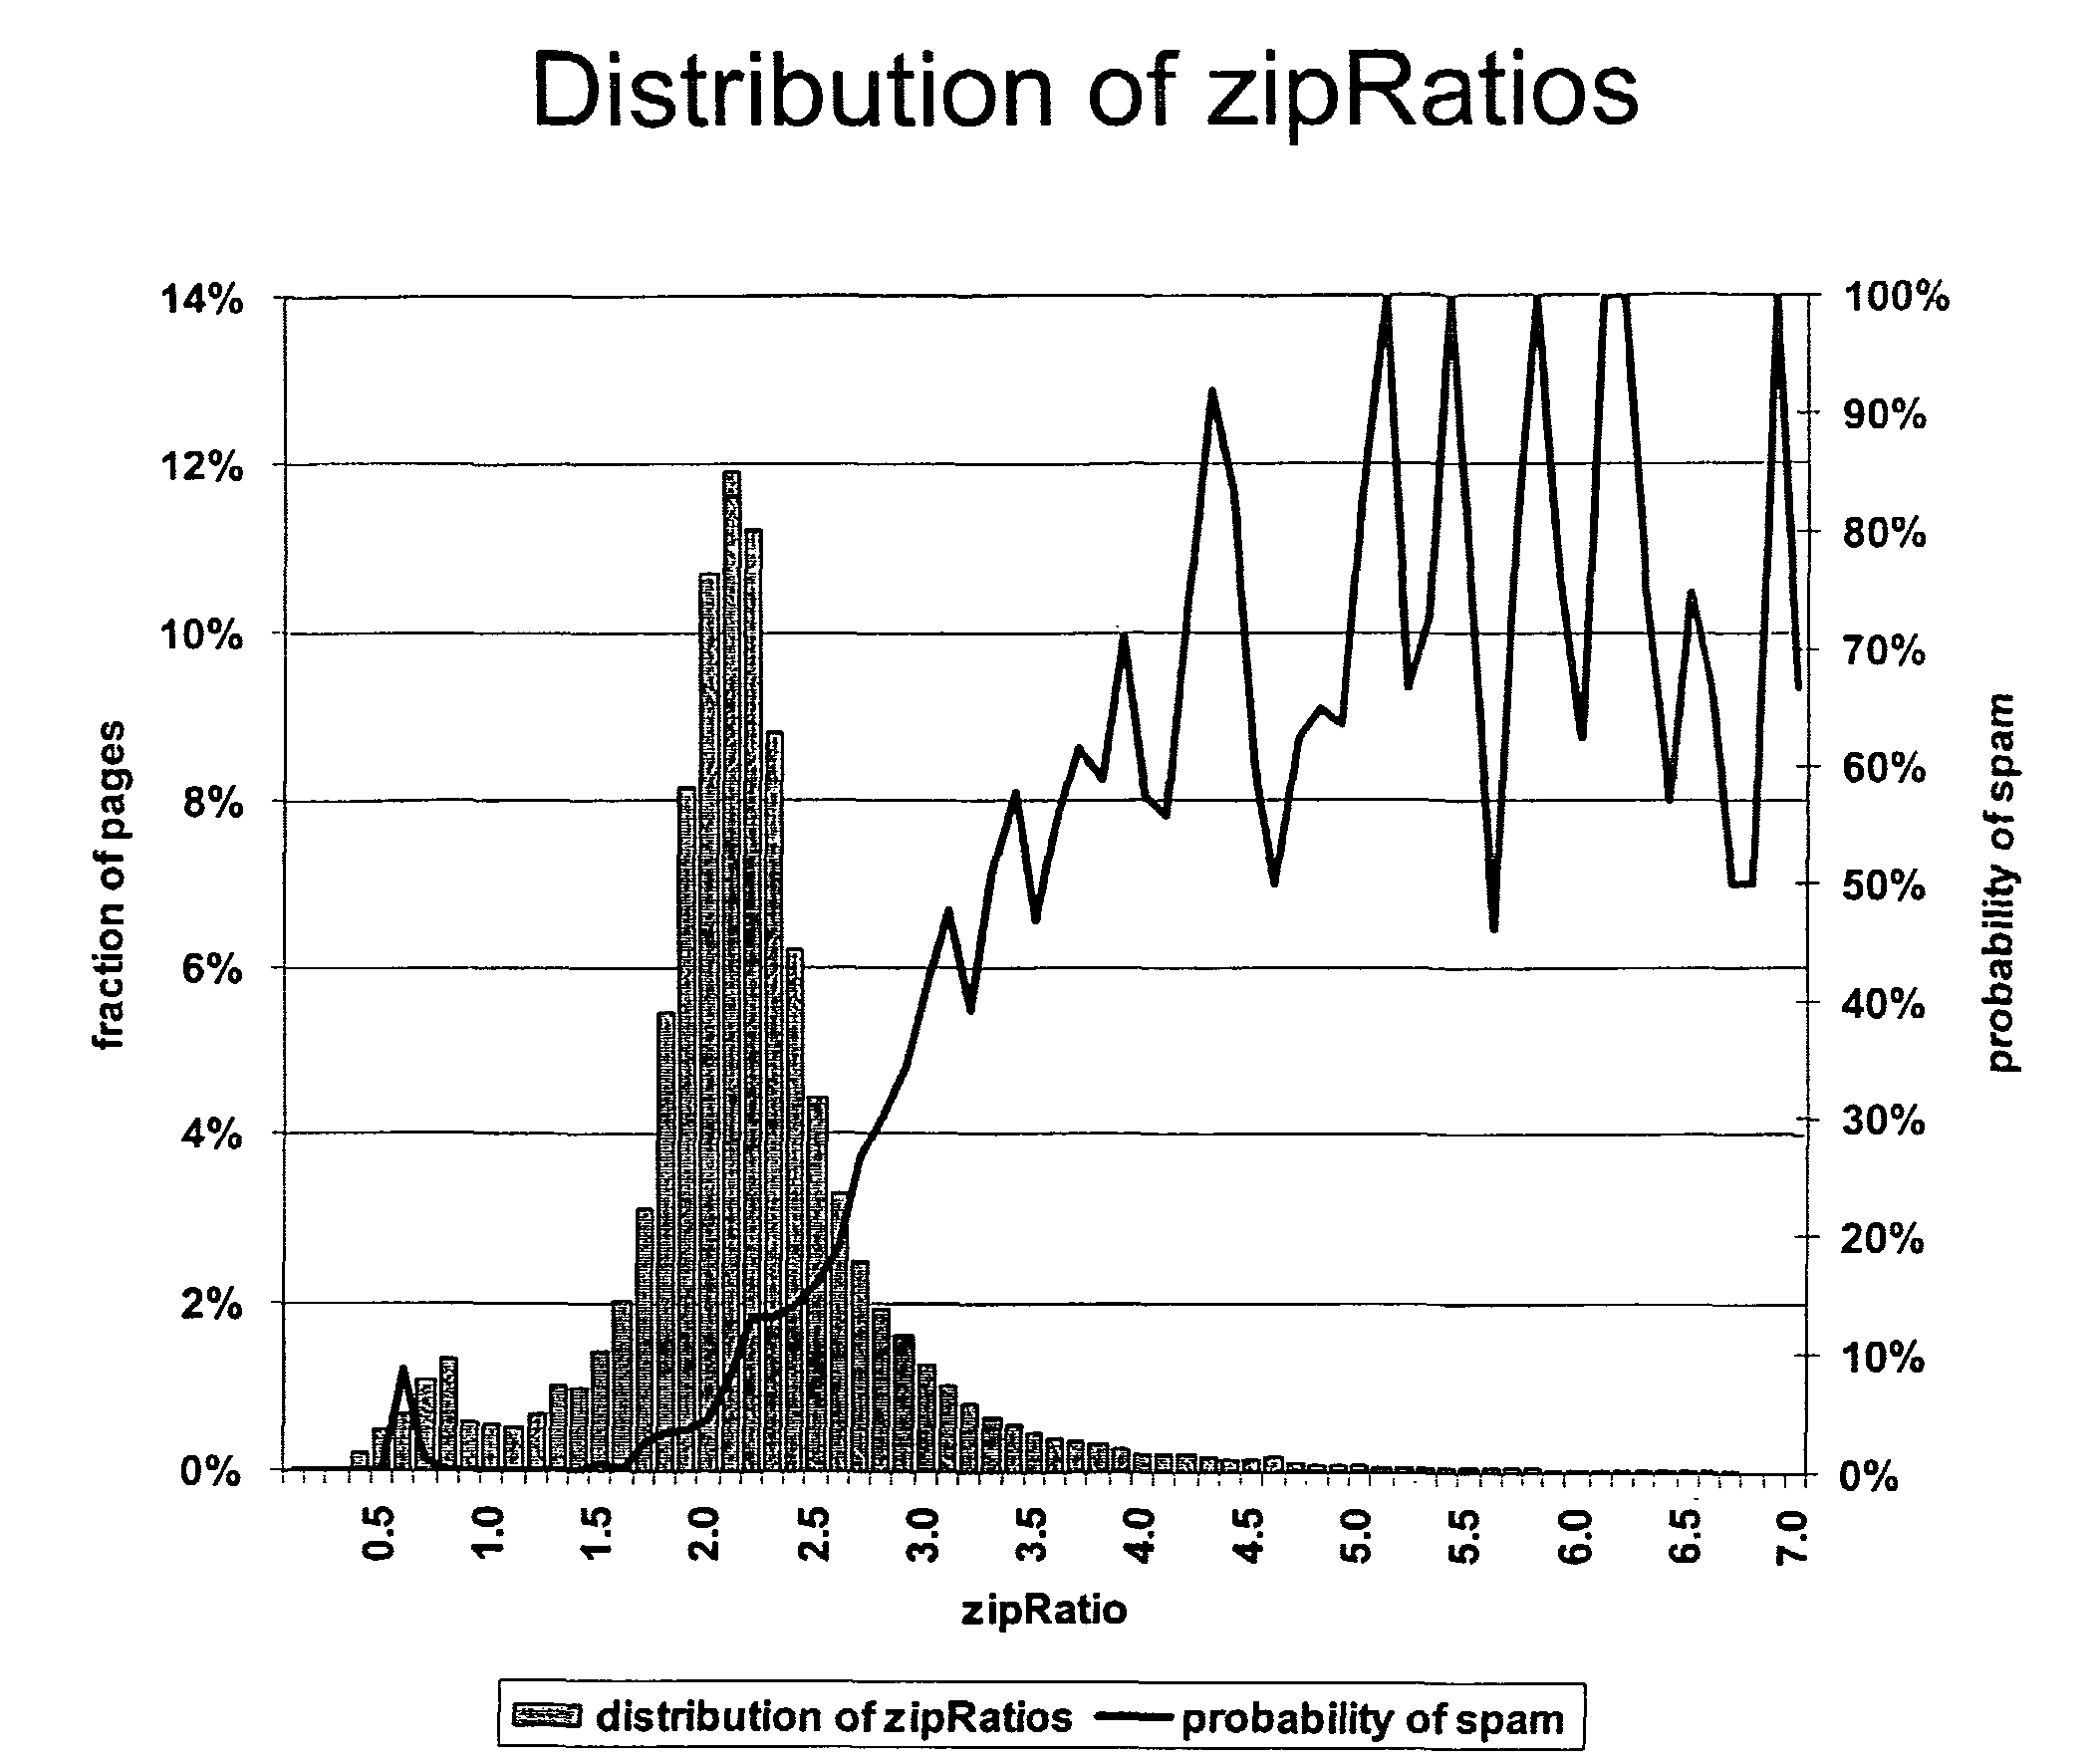 zipRatios distribution